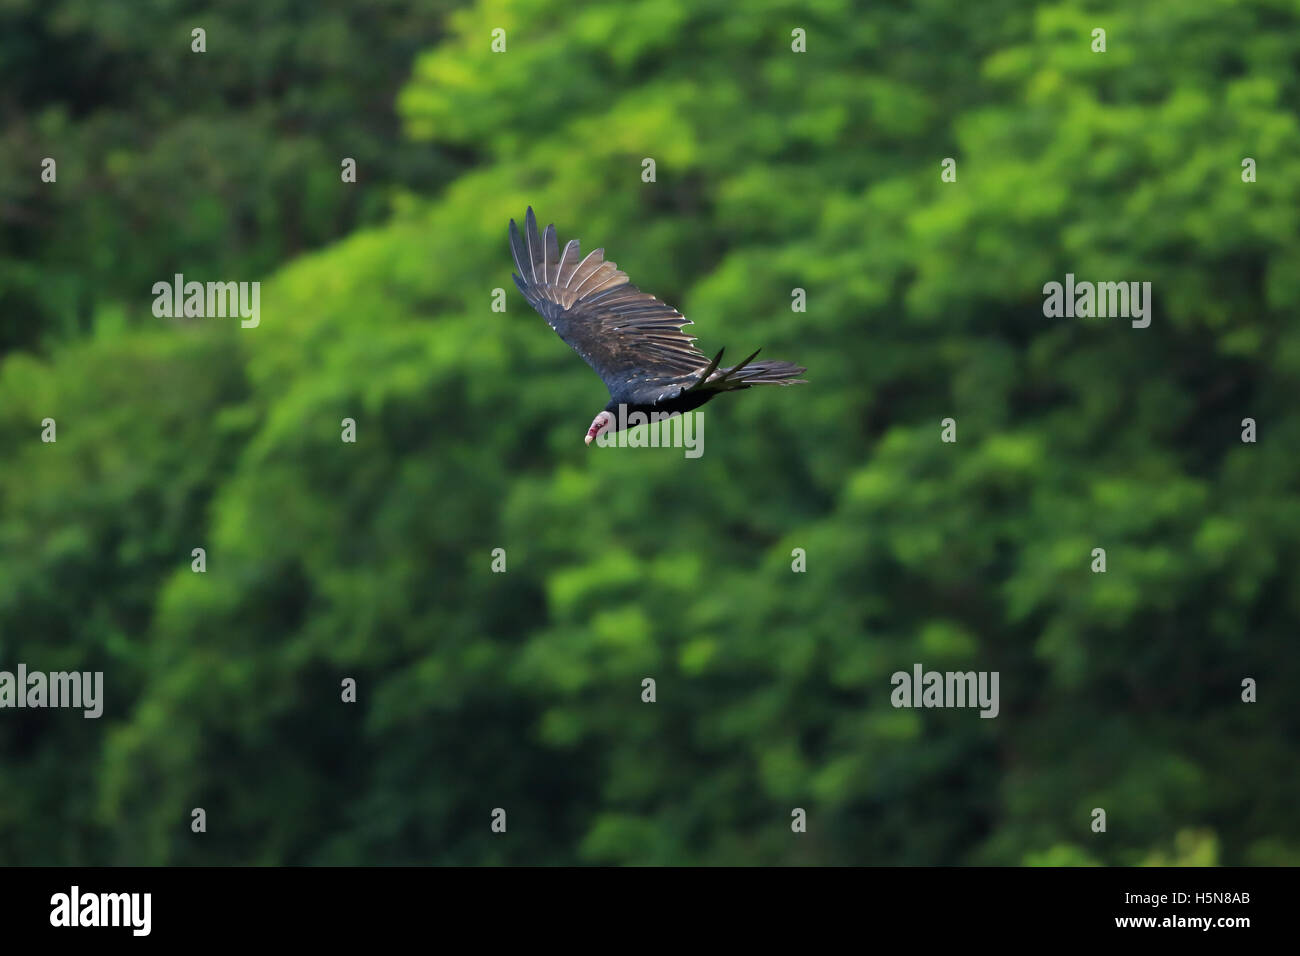 Turkey Vulture (Cathartes aura) flying over rainforest canopy in Tortuguero National Park, Costa Rica. - Stock Image